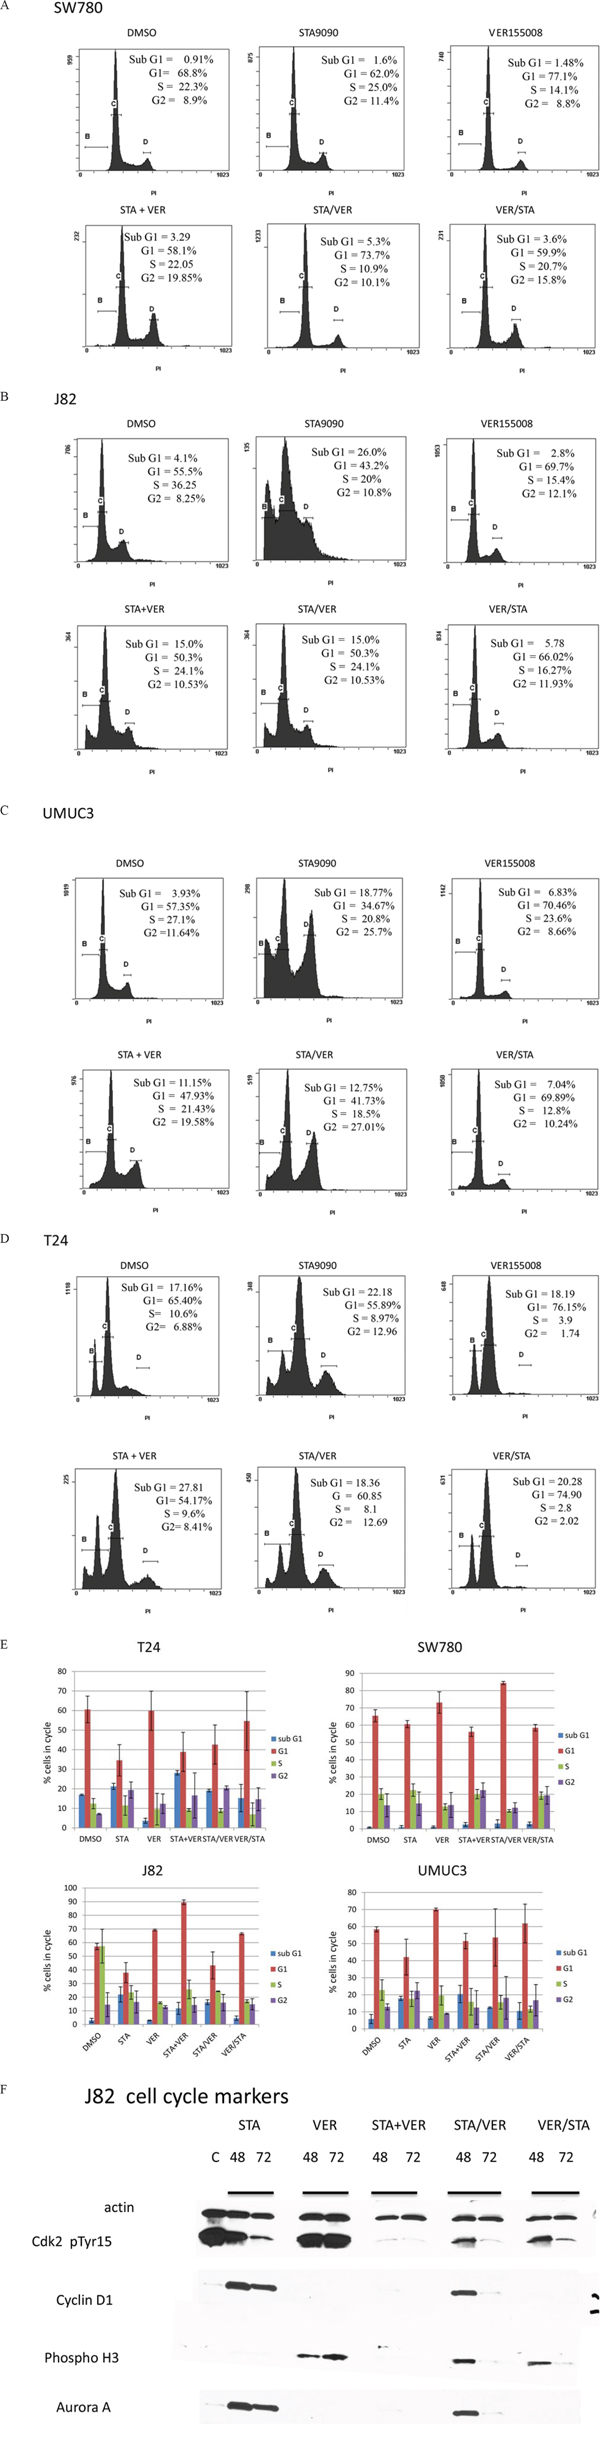 Flow cytometry and cell cycle analysis of bladder cells treated with HSP90 and/or HSP70 inhibitors.